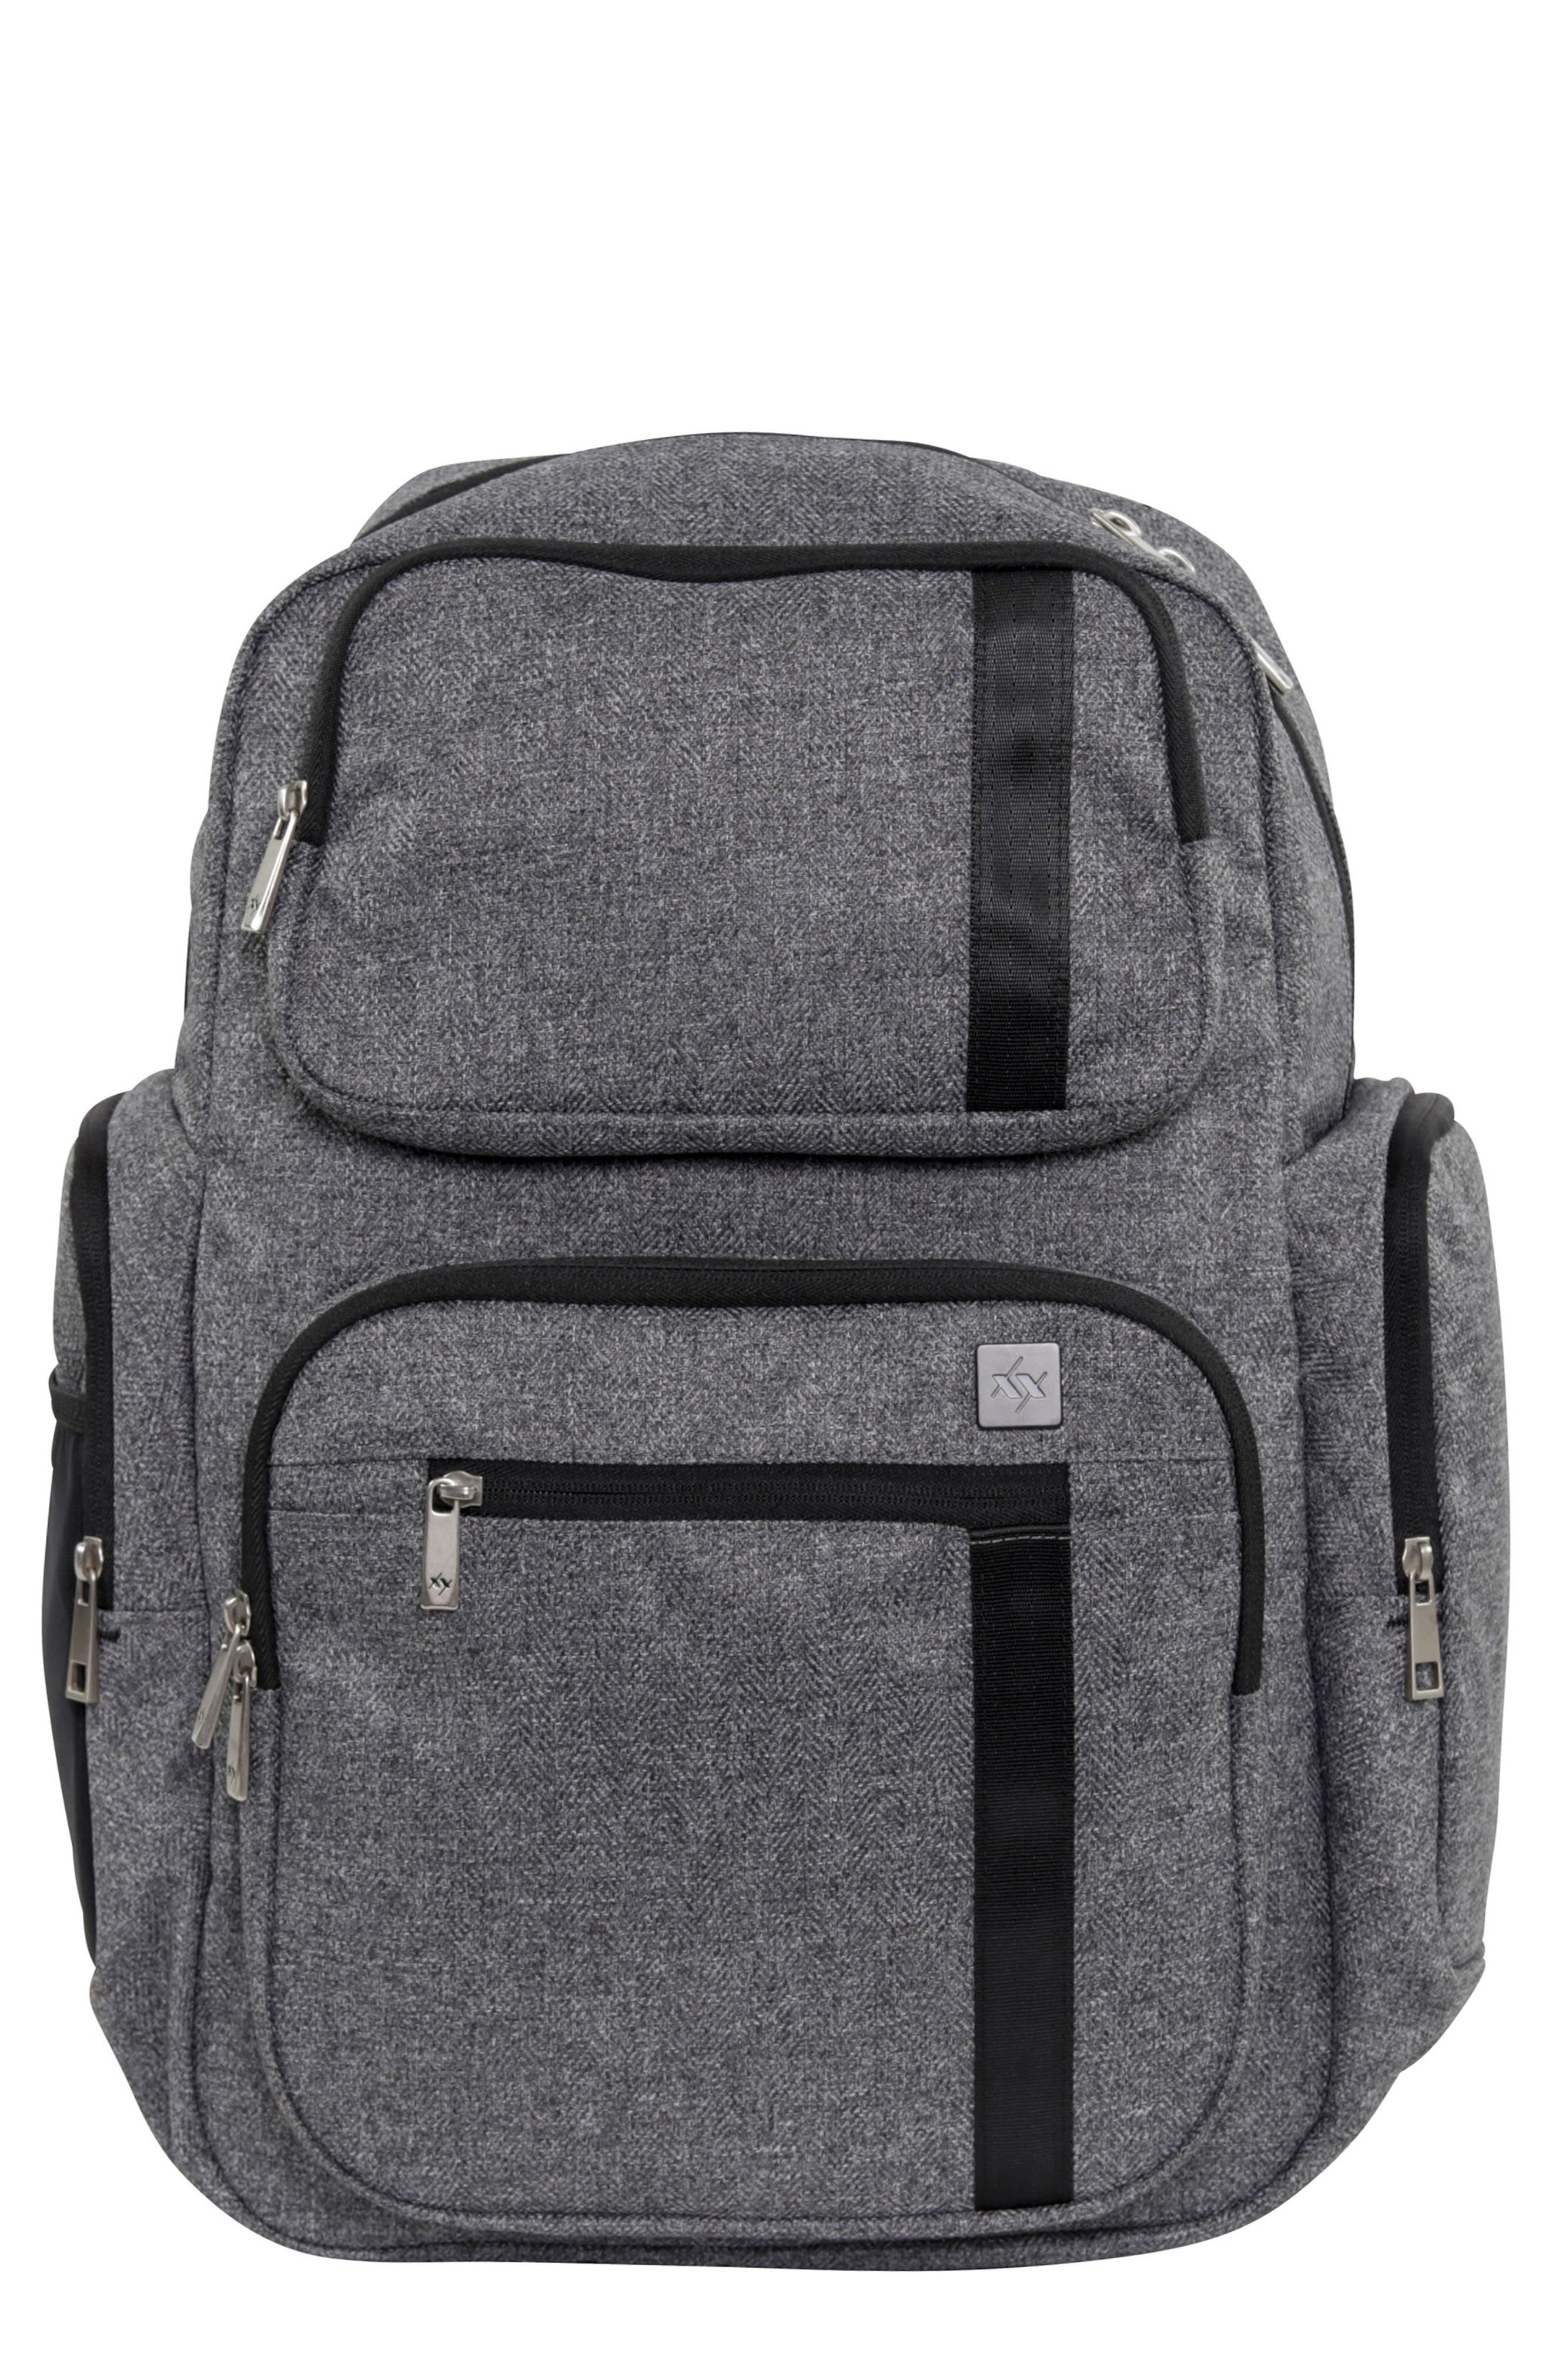 XY Vector Diaper Backpack,                         Main,                         color, GRAY MATTER